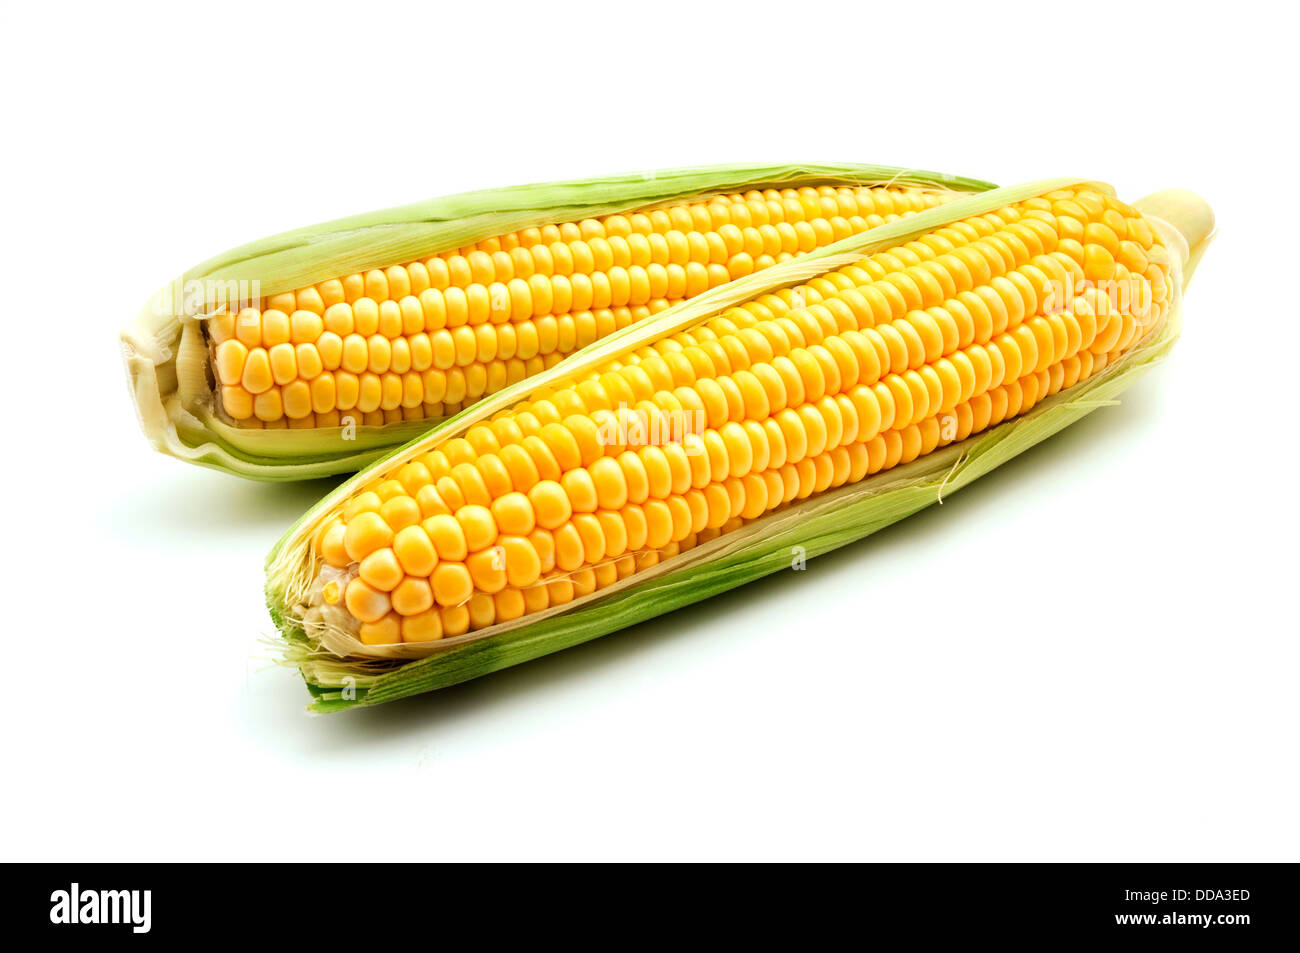 Ears of maize on a white background - Stock Image